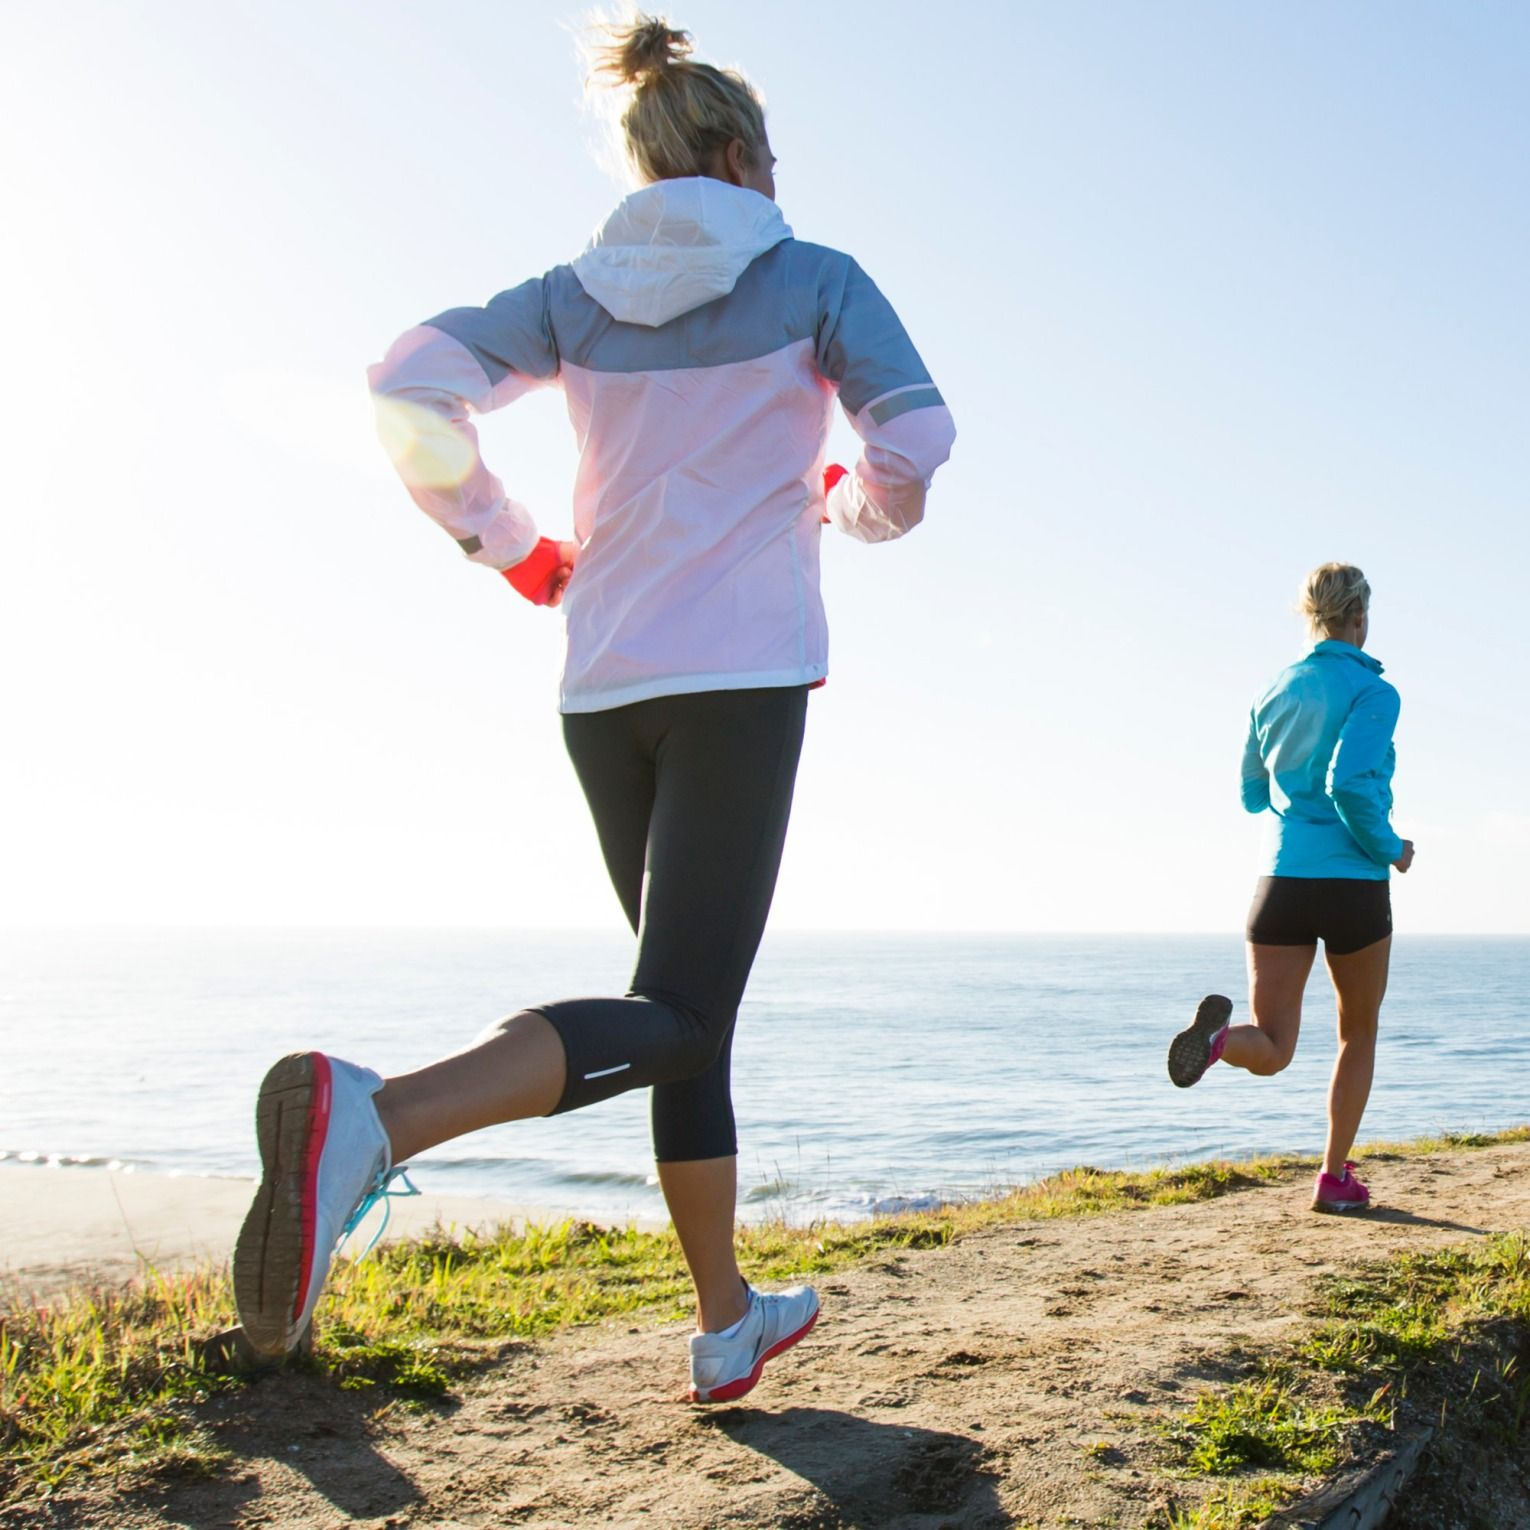 Whether you're a seasoned pro or a running novice, there are always ways to improve your speed and endurance. Watch the video to learn the small tweaks to your routine that reap huge running rewards.   Health.com